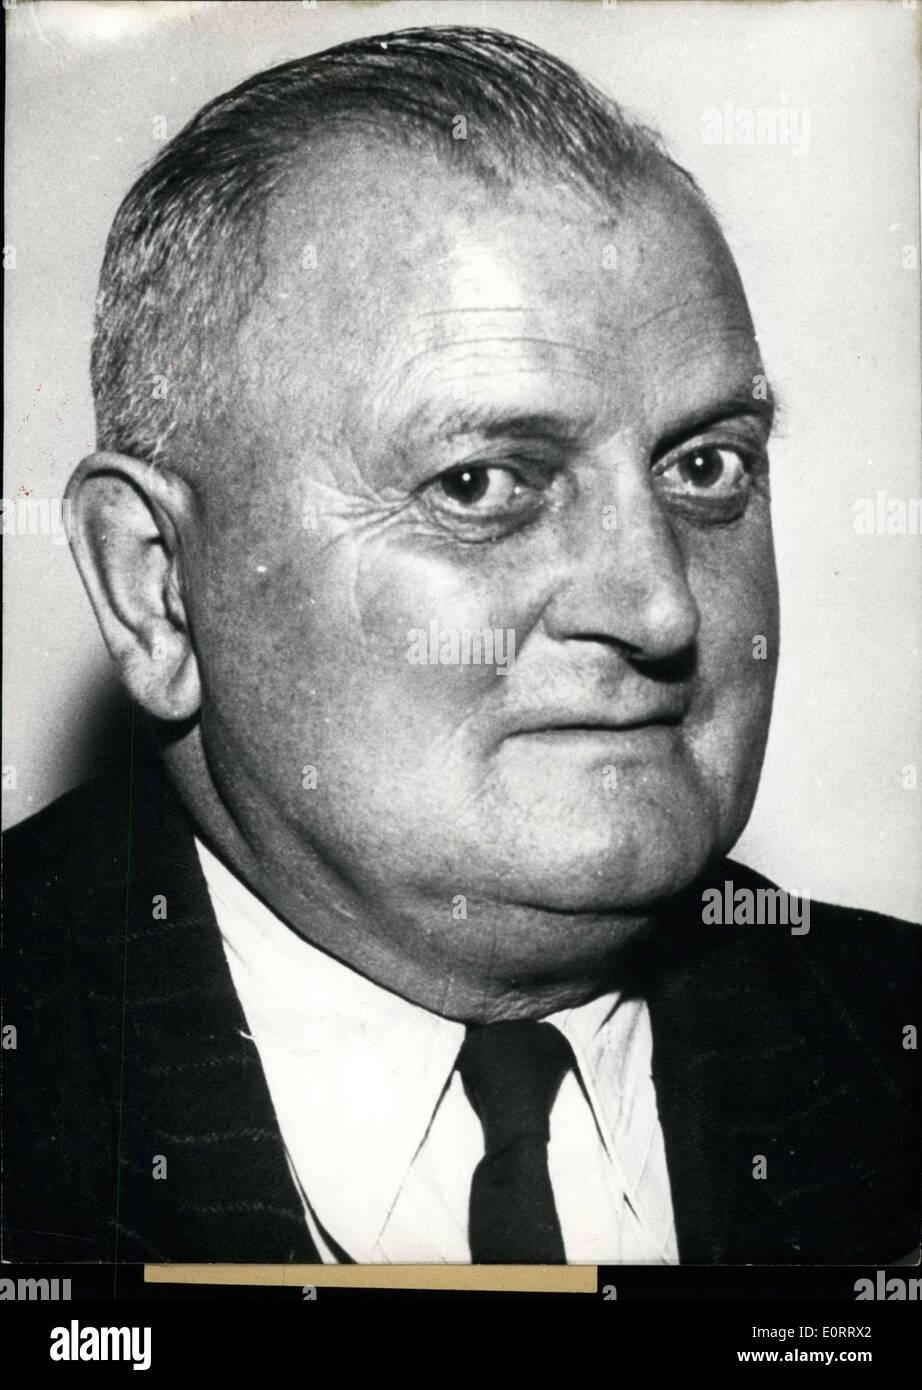 May 08, 1960 - Member of Parliament gave documents to the East: On Oct. 28th, the member of parliament (Socialist Democratic Party) Alfred Frenzel (ALFRED FRENZEL) was arrested. He is accused of having give important informations to the East. He has already pleaded guilty. Photo shows Alfred Frenzel. - Stock Image